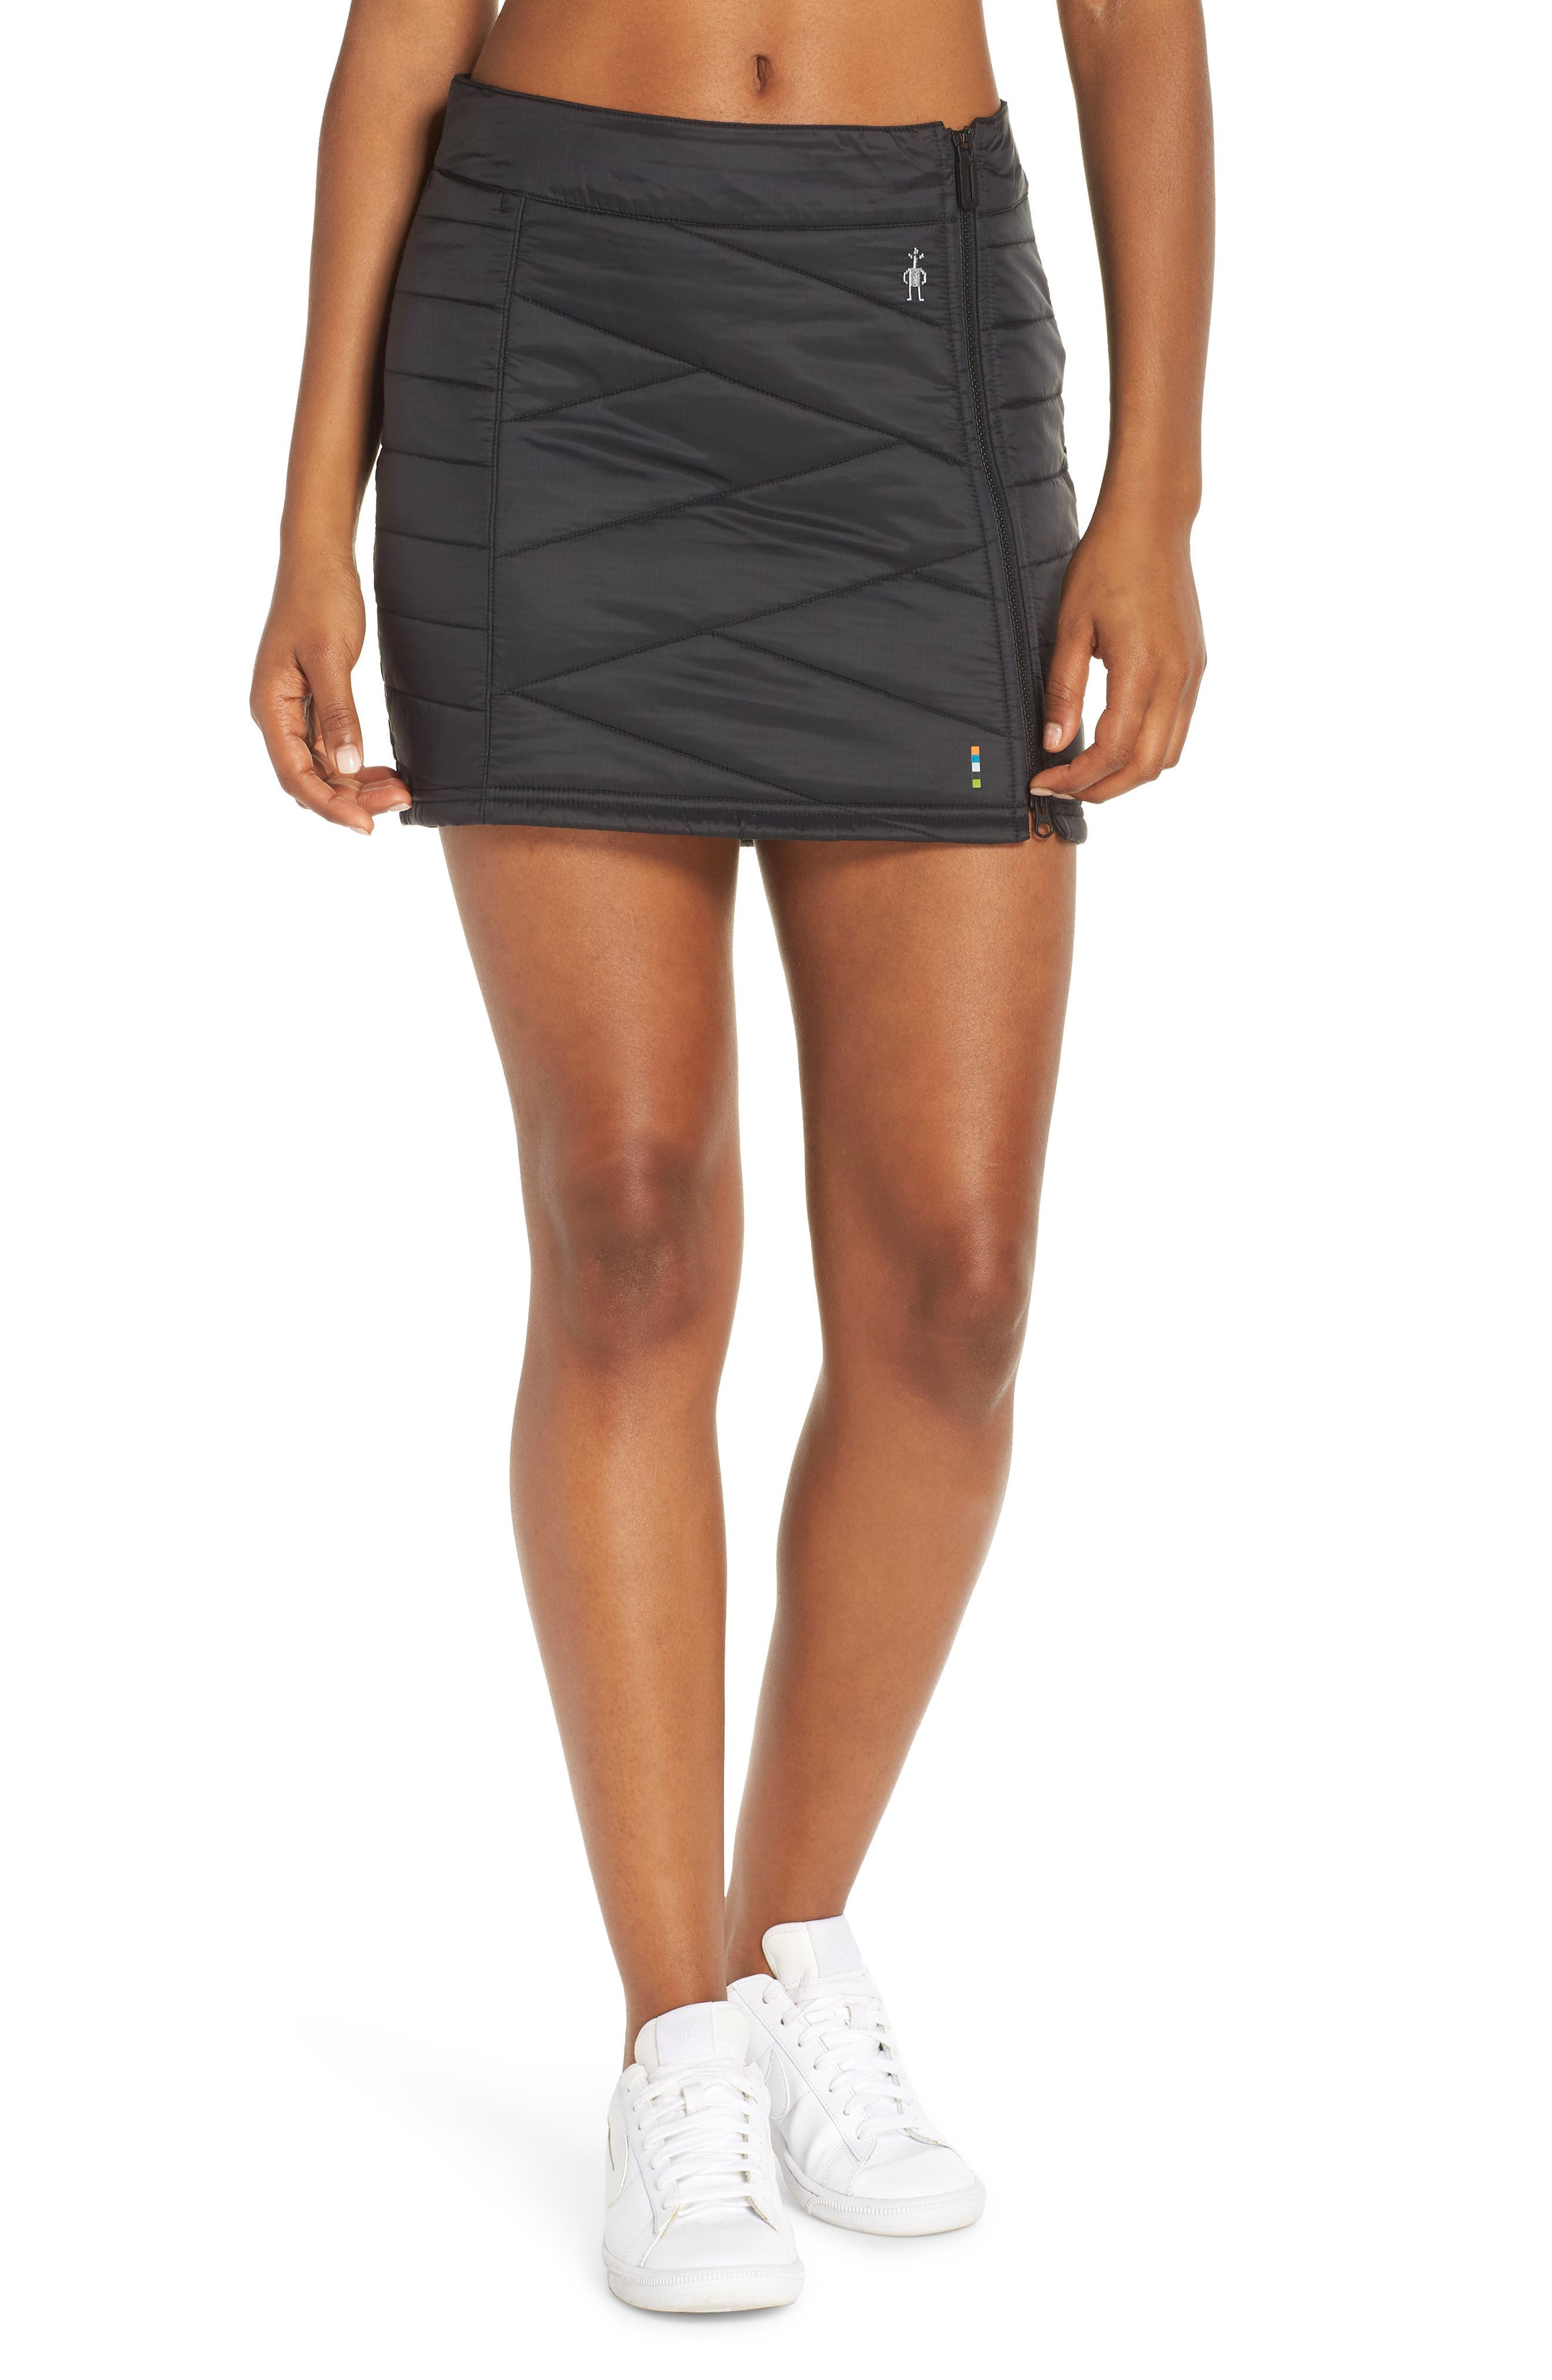 Smartloft 120 Quilted Skirt,                             Main thumbnail 1, color,                             001